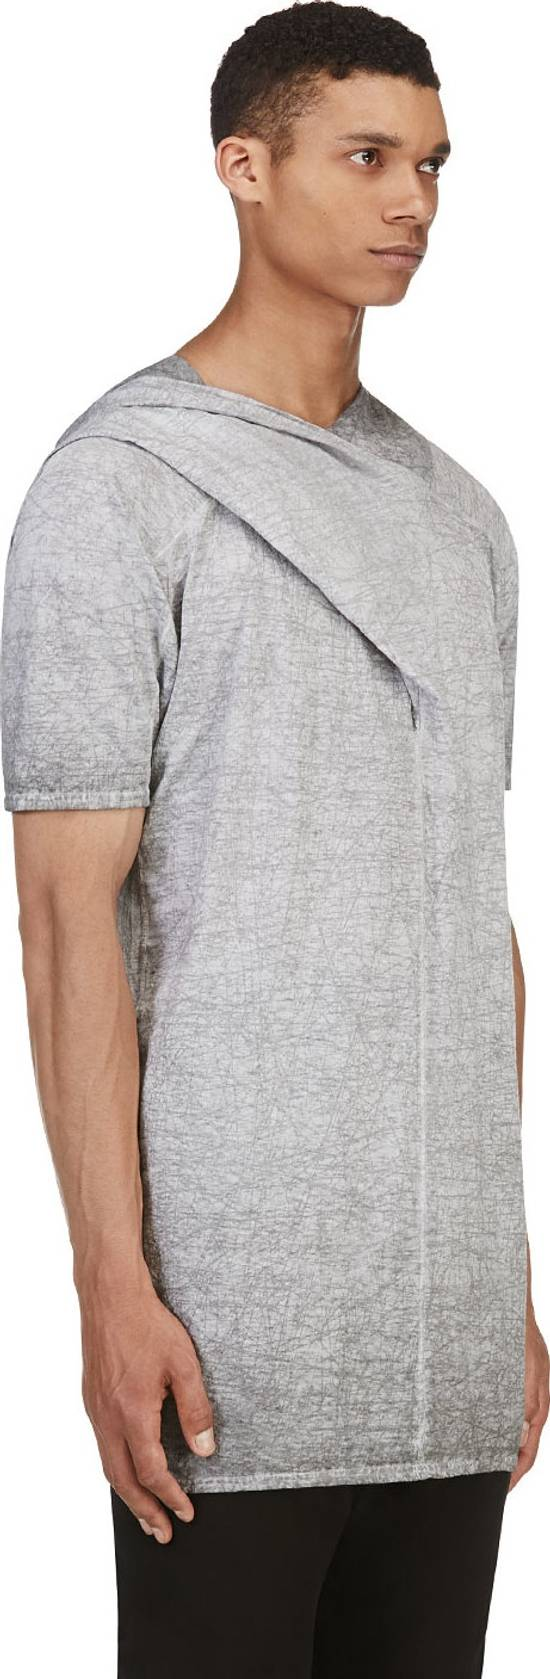 Julius Grey Scratch Hooded T-Shirt Size US L / EU 52-54 / 3 - 2